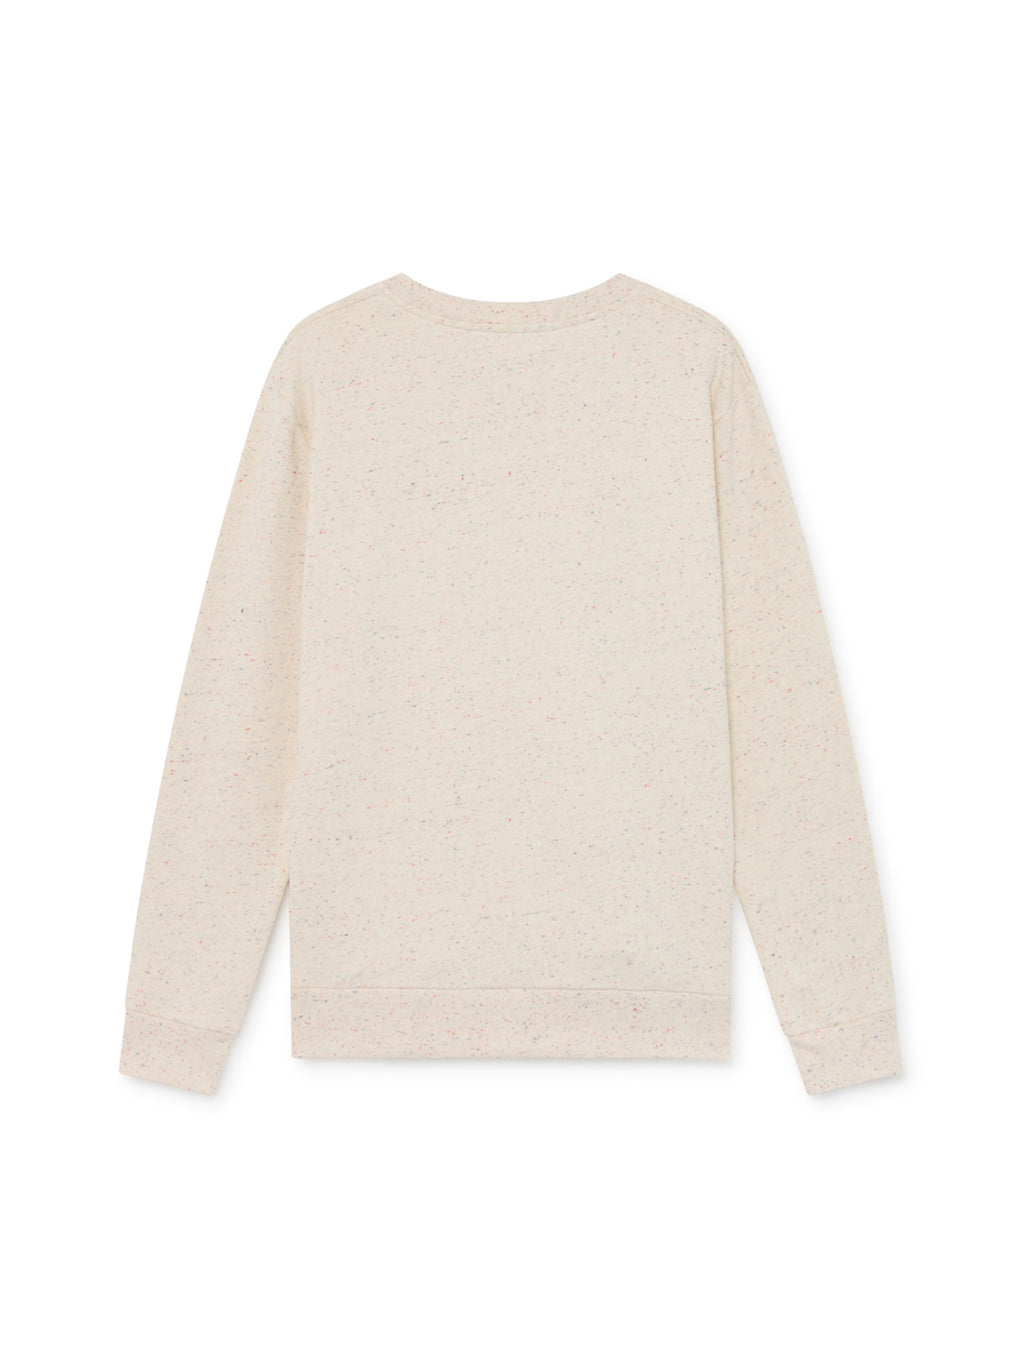 TWOTHIRDS Mens Sweat: Navarino - Ecrue back